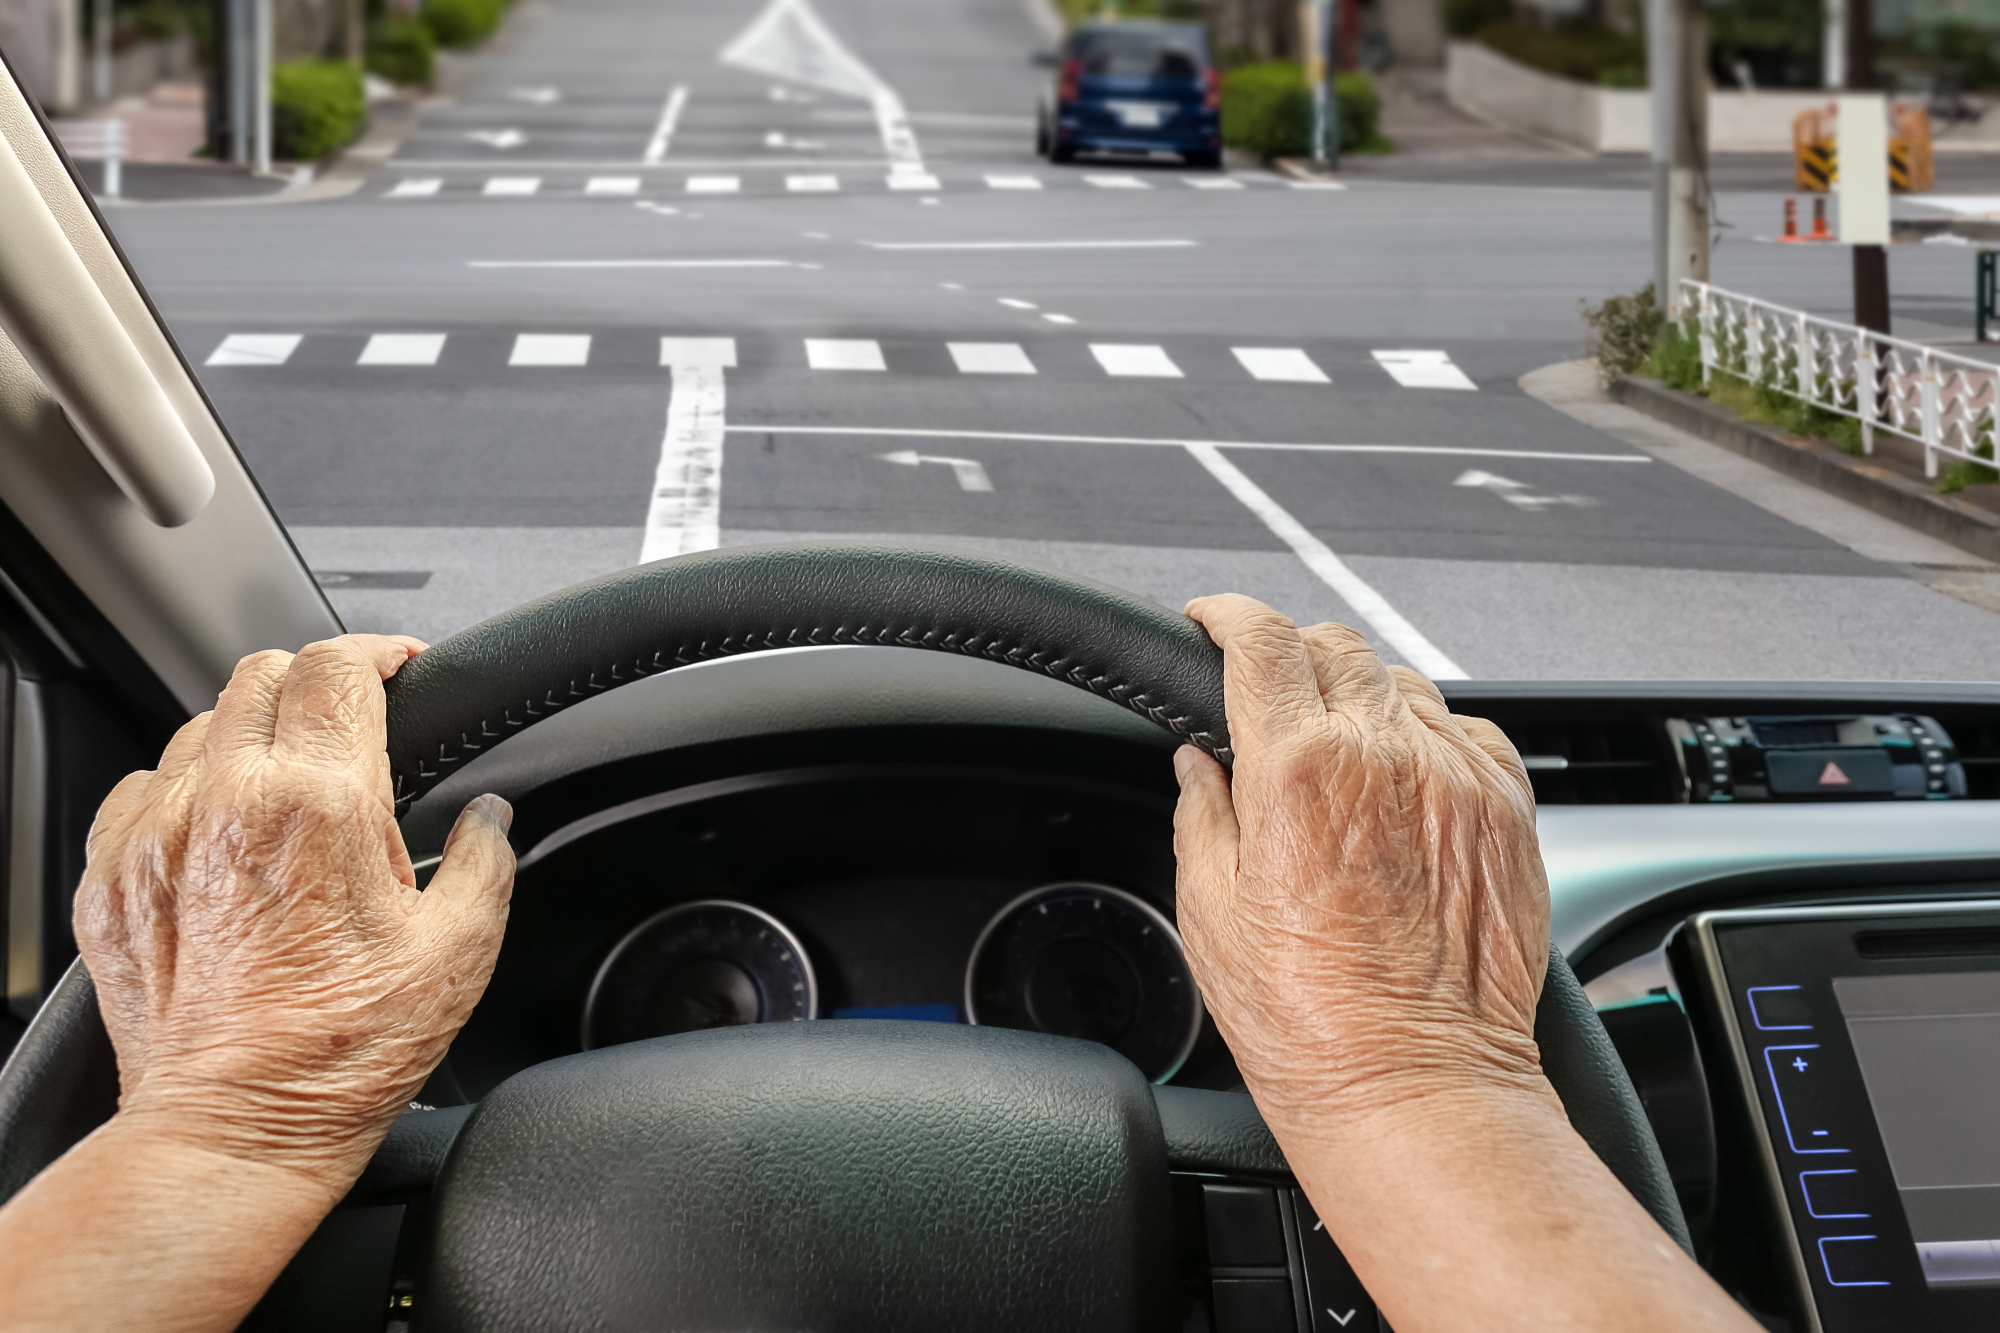 More than 80 percent of drivers aged 75 or older who caused fatal accidents in 2016 had no records of any traffic accidents or violations in the preceding three years, the National Police Agency found.   KYODO